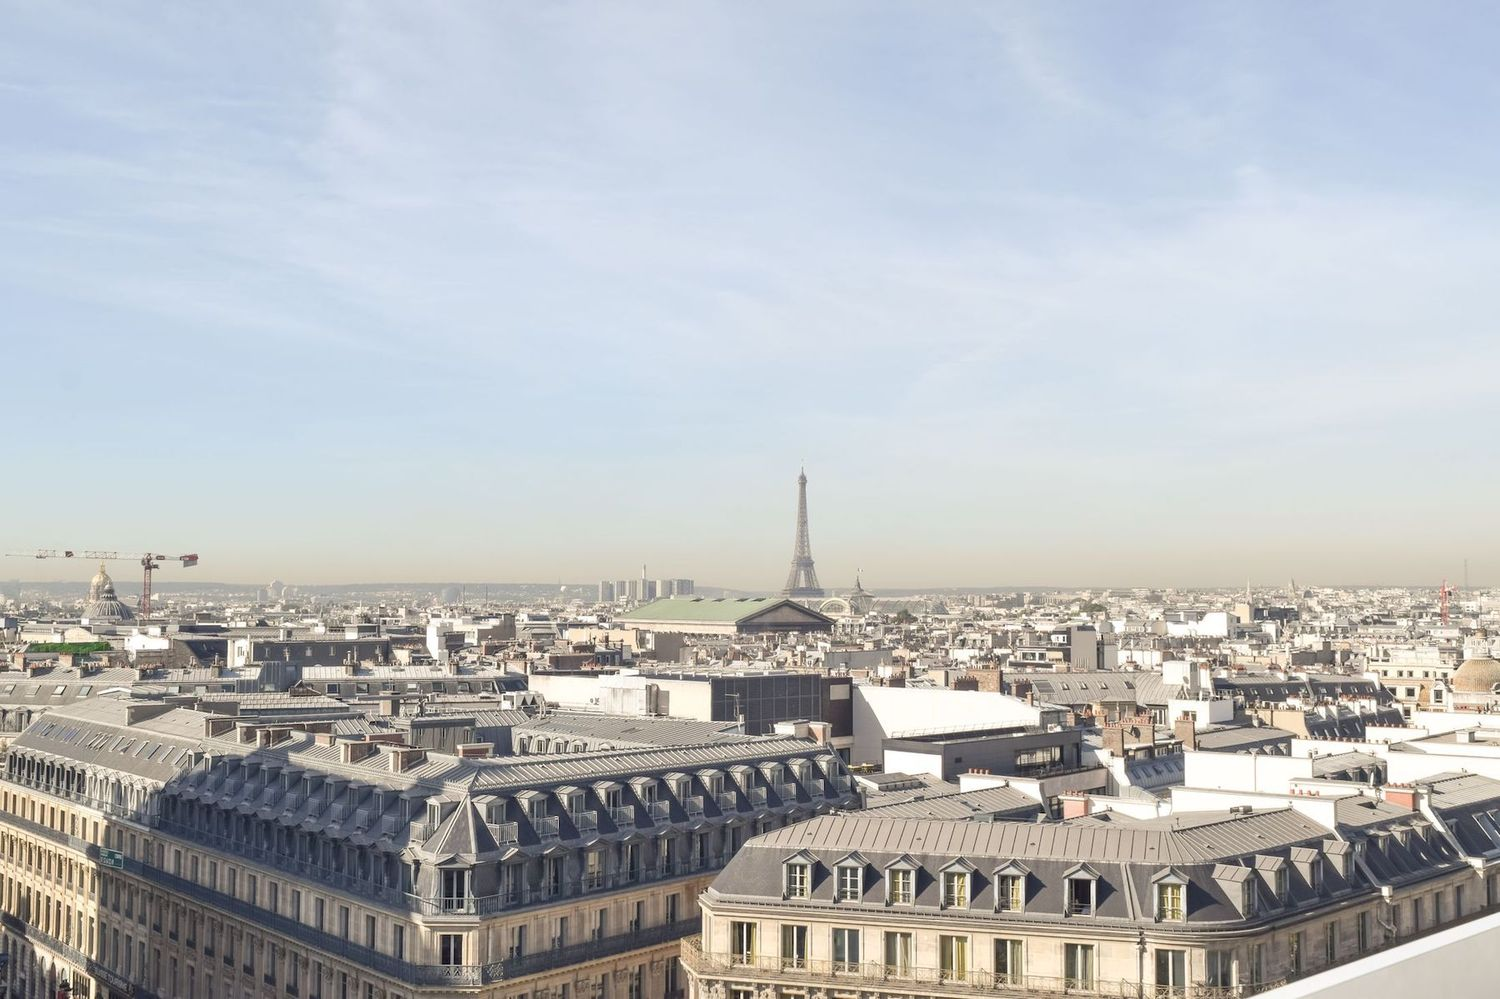 Galeries Lafayette Rooftop View of Eiffel Tower, One of the best views in Paris!